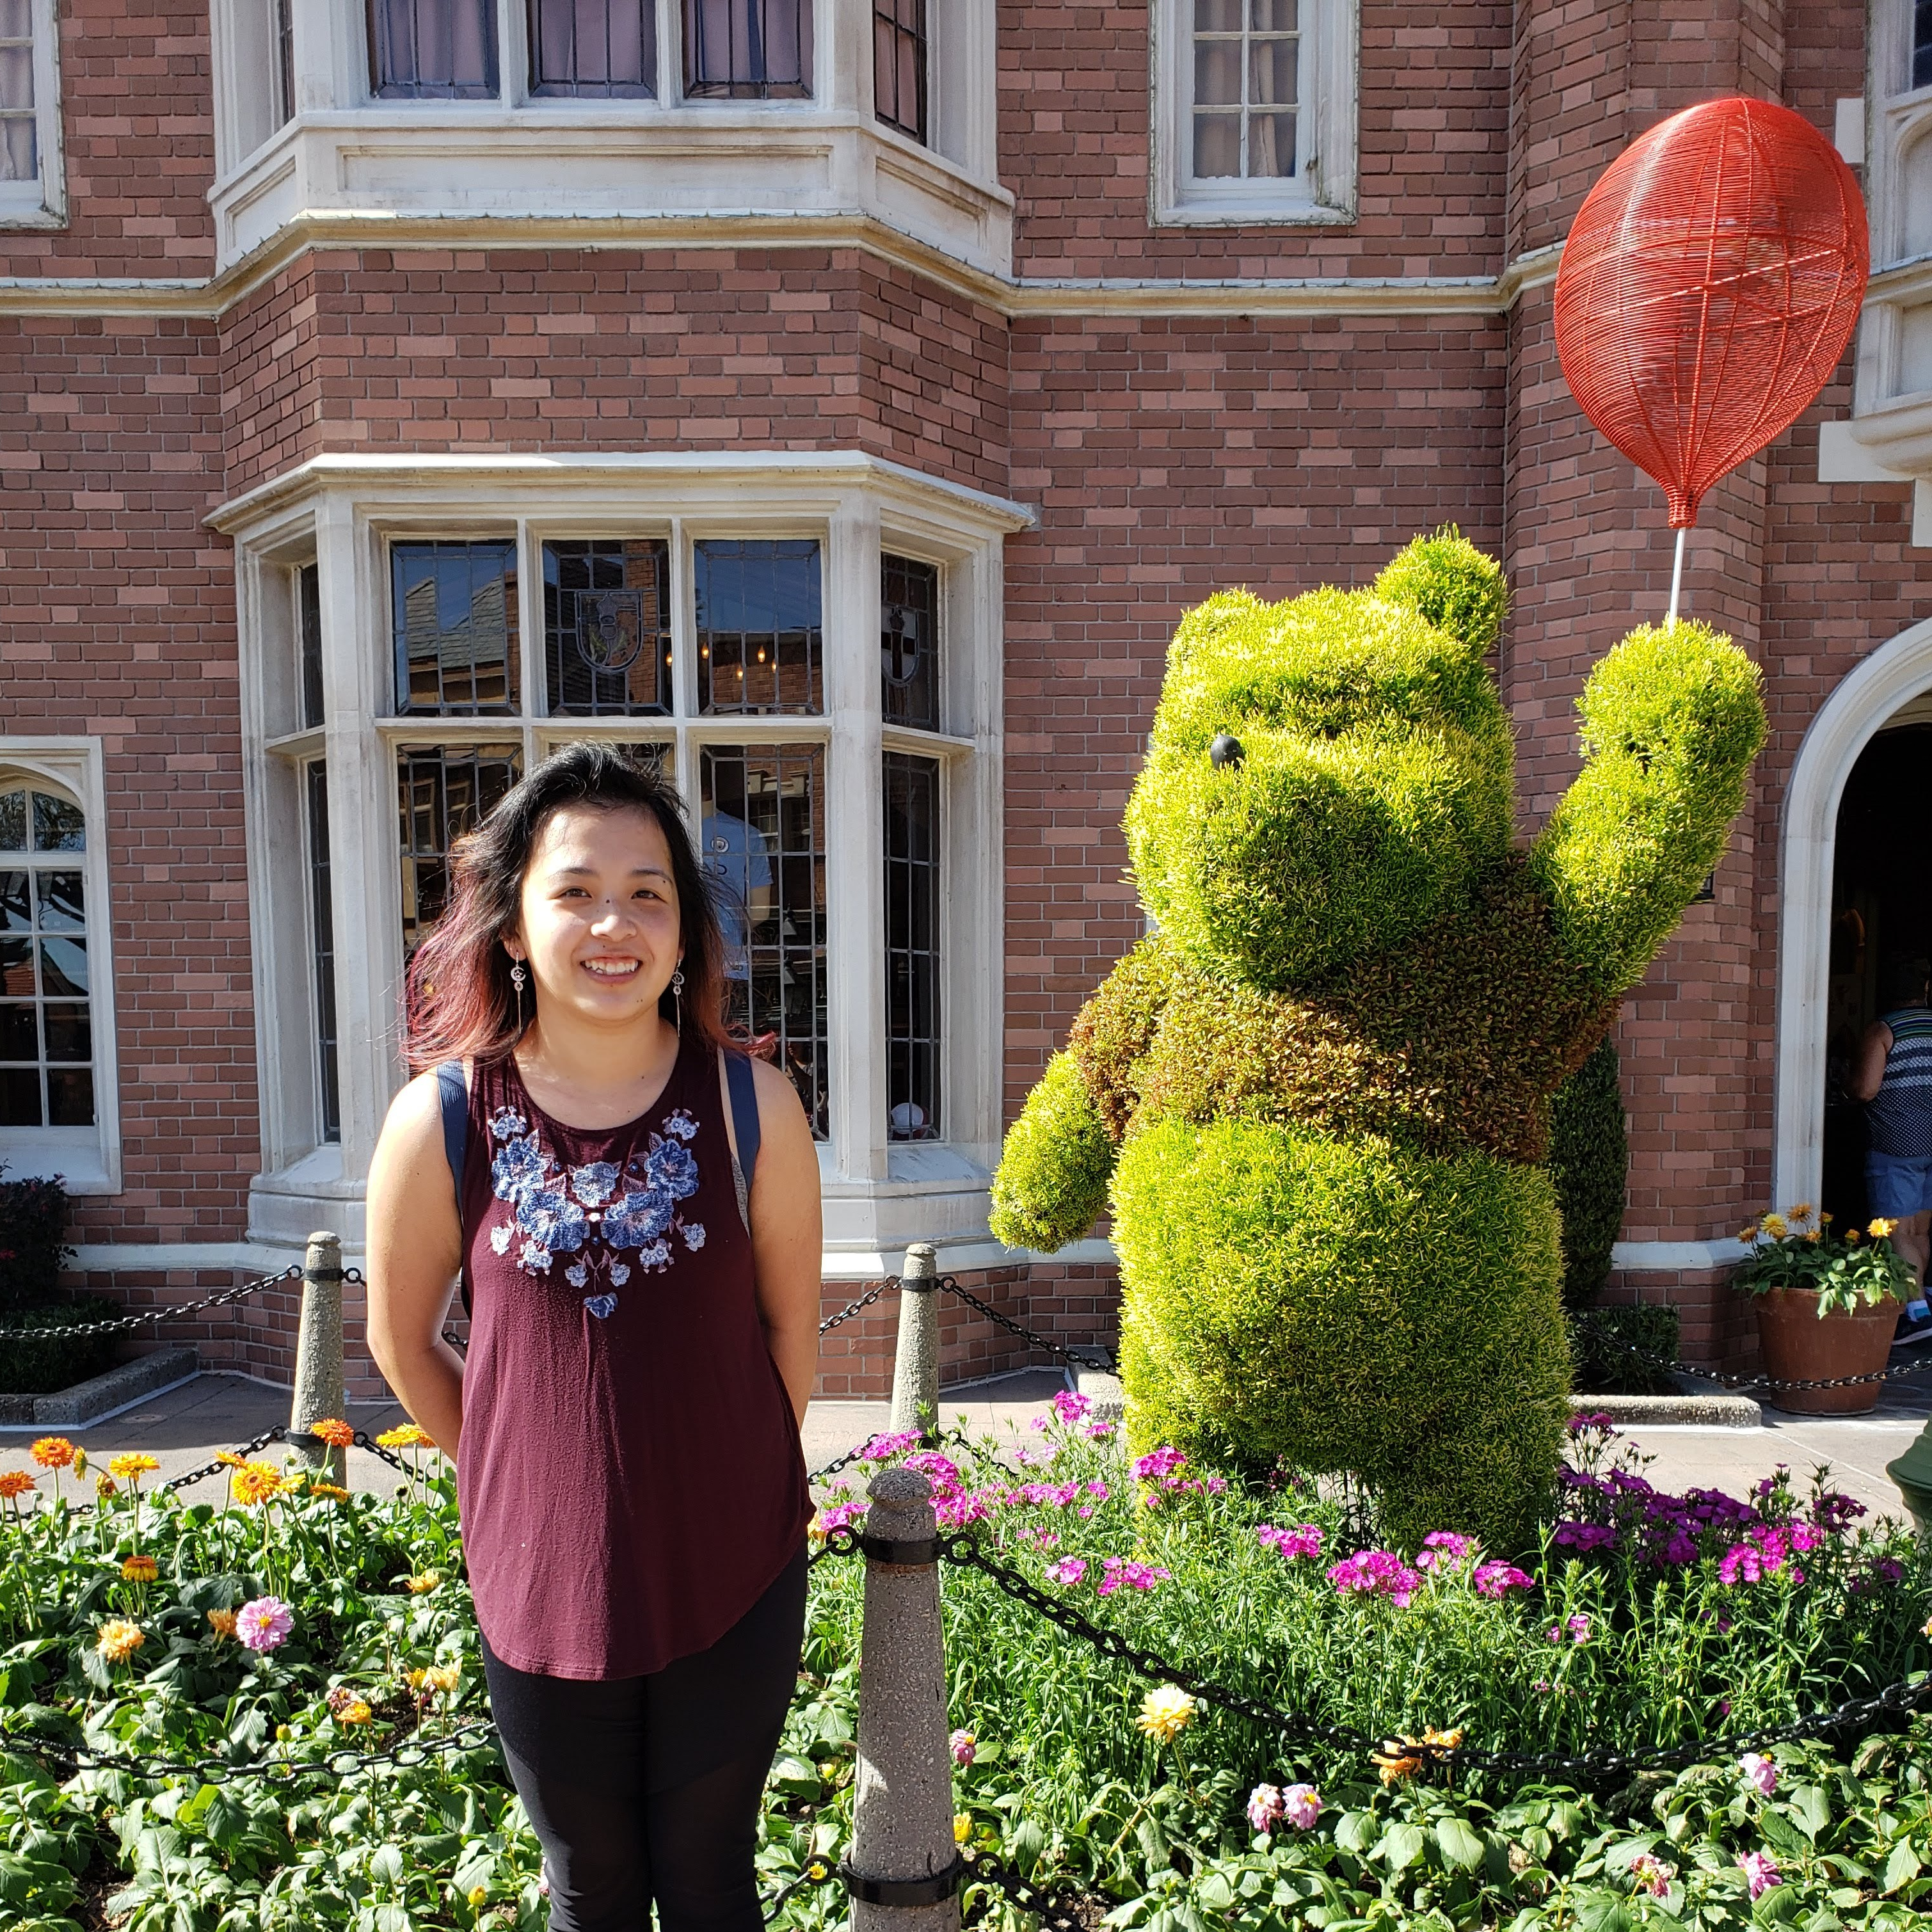 A photo of me and a Pooh Bear topiary in the London area of Epcot.